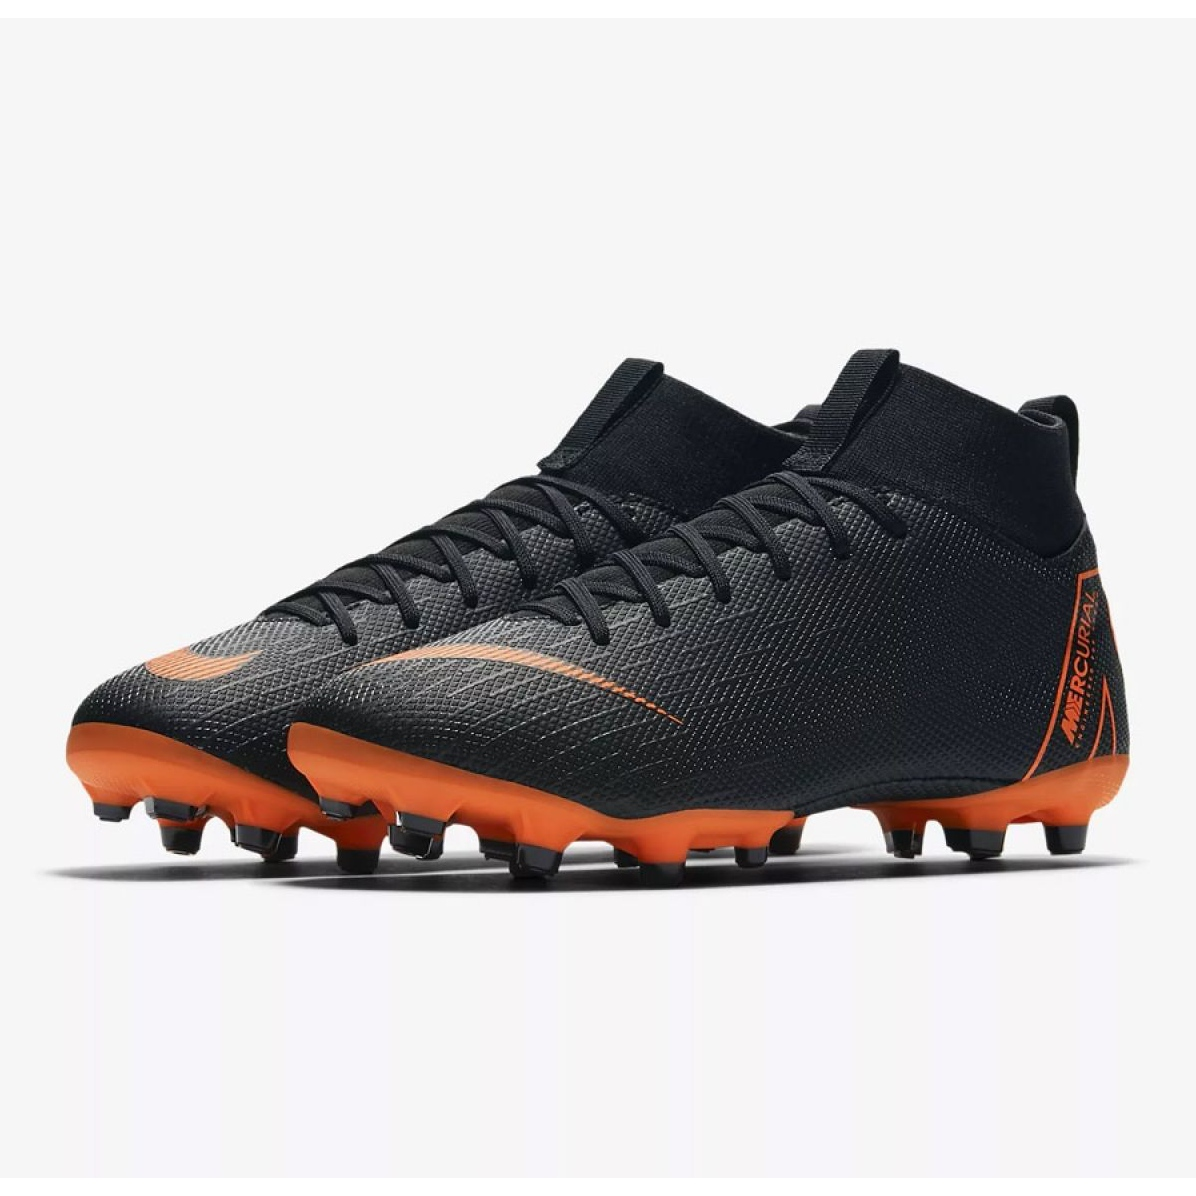 sports shoes 782ef 1f9c8 Football shoes Nike Mercurial Superfly 6 Academy Gs Mg Jr AH7337-081  picture 3